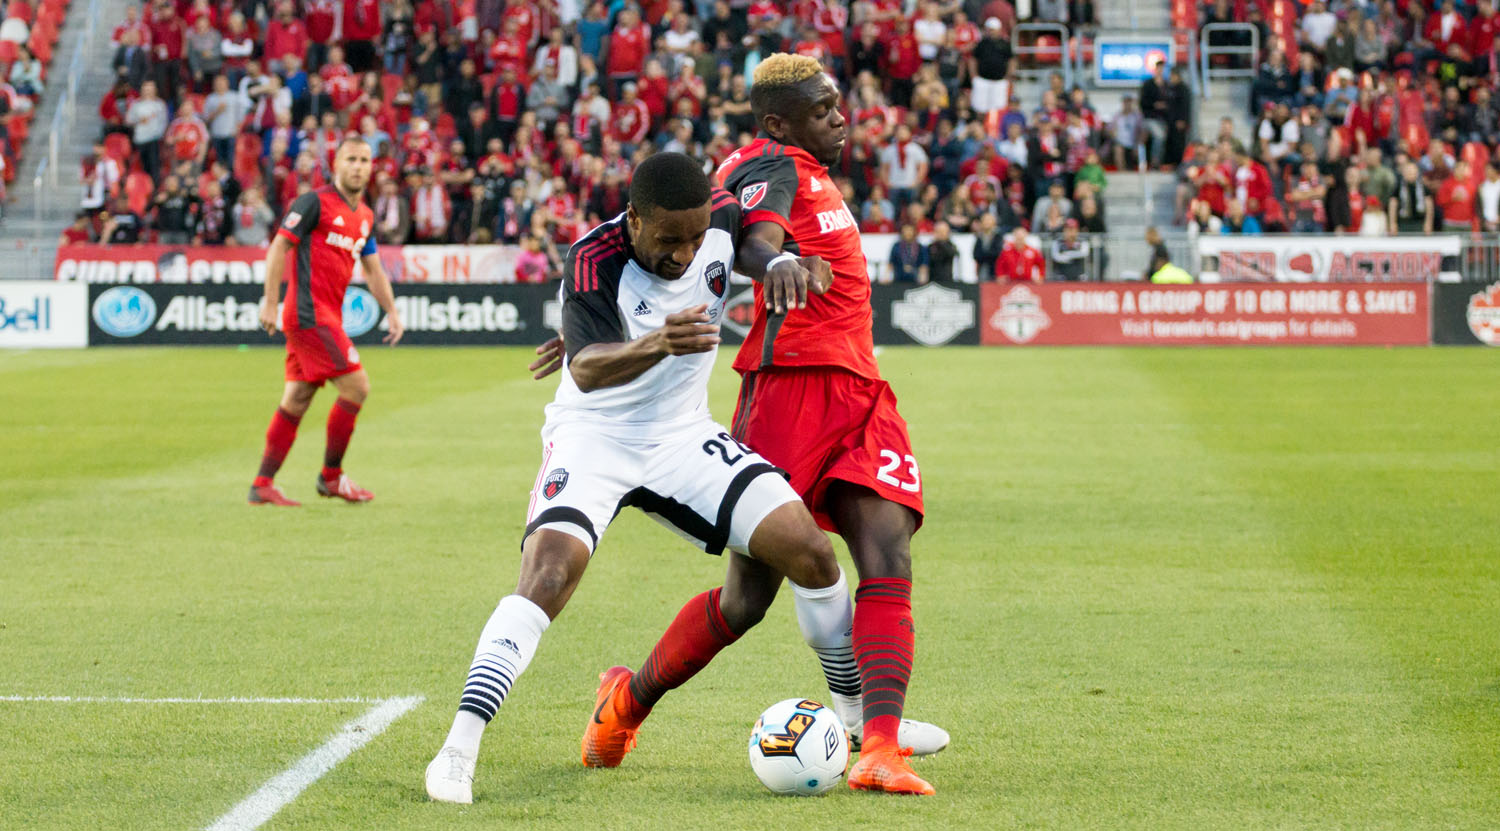 Chris Mavinga attempting to keep position of the ball against a Ottawa Fury defender during a game at BMO Field for the Canadian Championship in 2017.Image by Dennis Marciniak of denMAR Media.